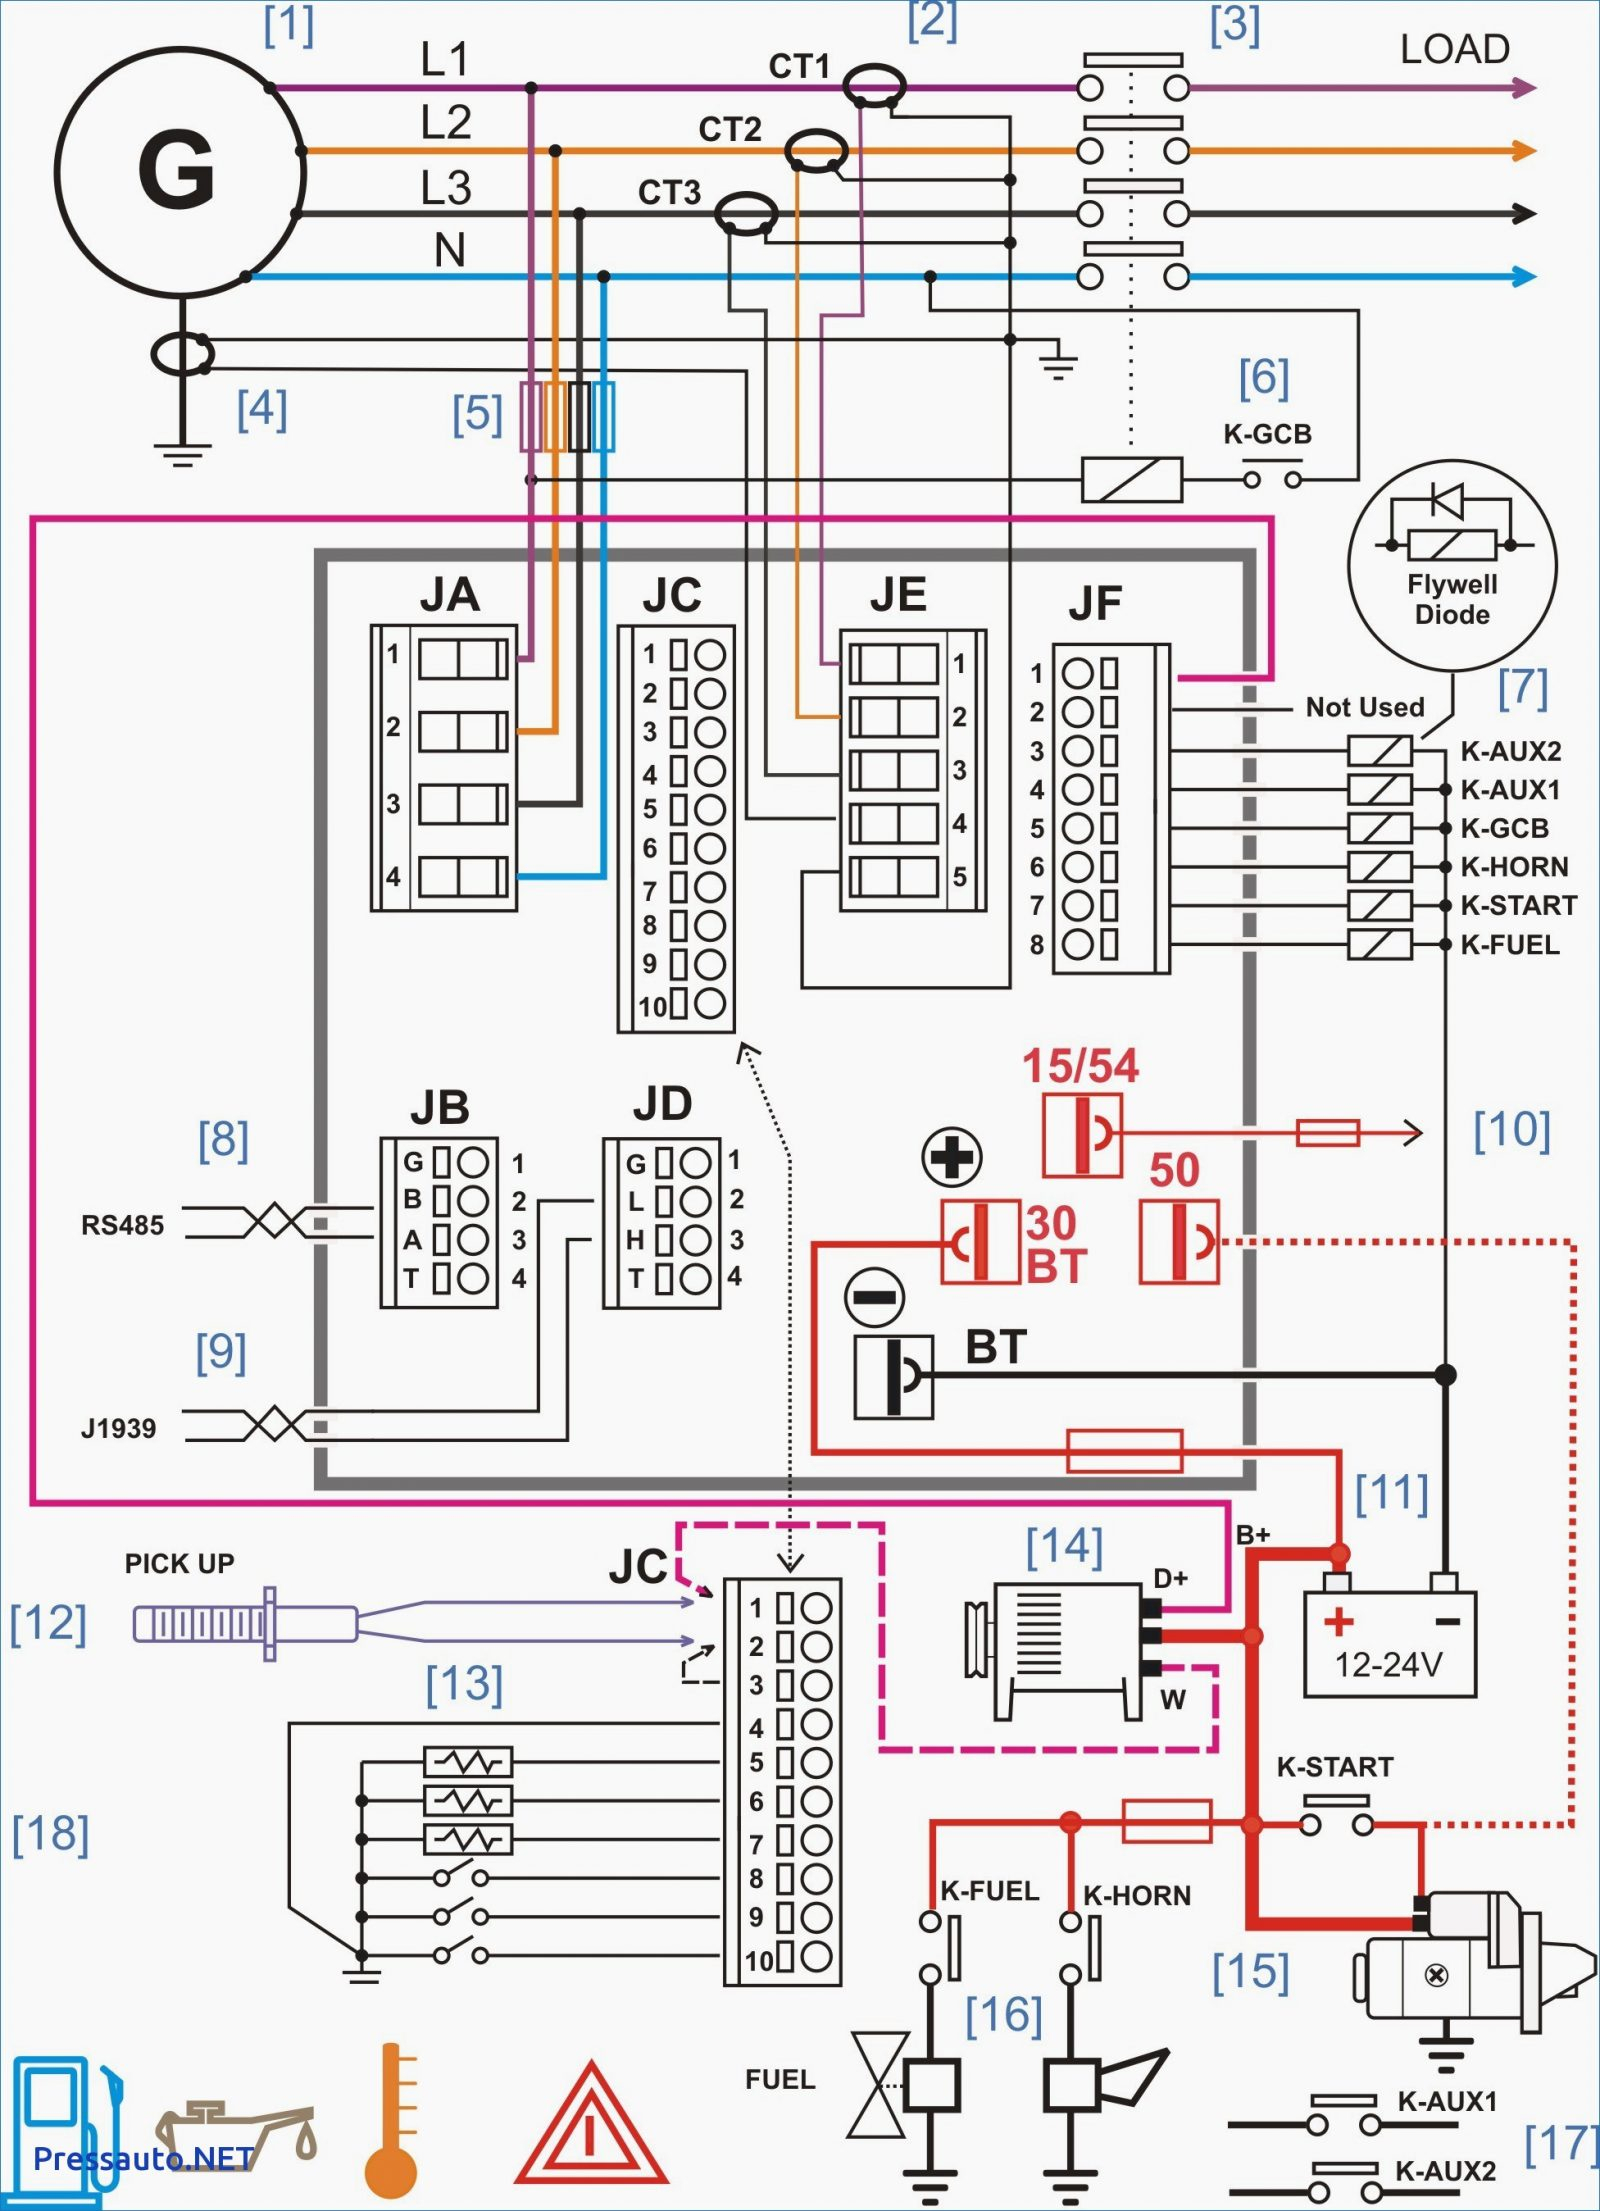 asco 300 wiring diagram wiring schematic diagram50 amp rv transfer switch wiring diagram 50 amp transfer switch asco automatic transfer switch residential